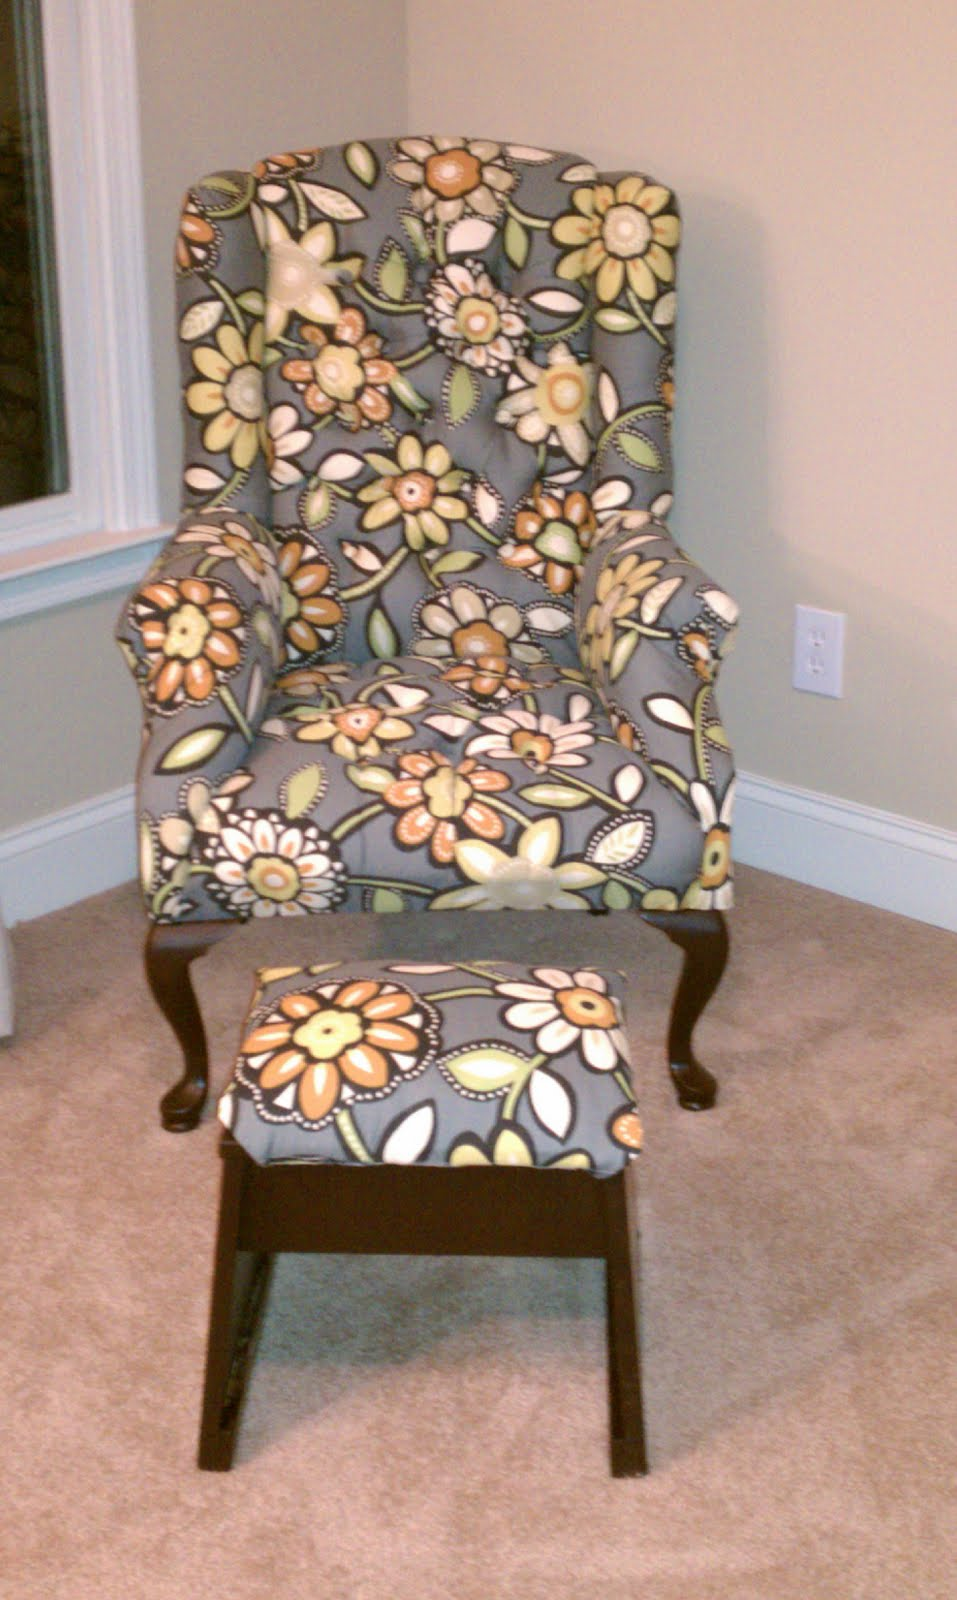 The Adventures of a German Girl: Wing Chair Recovery - Part II